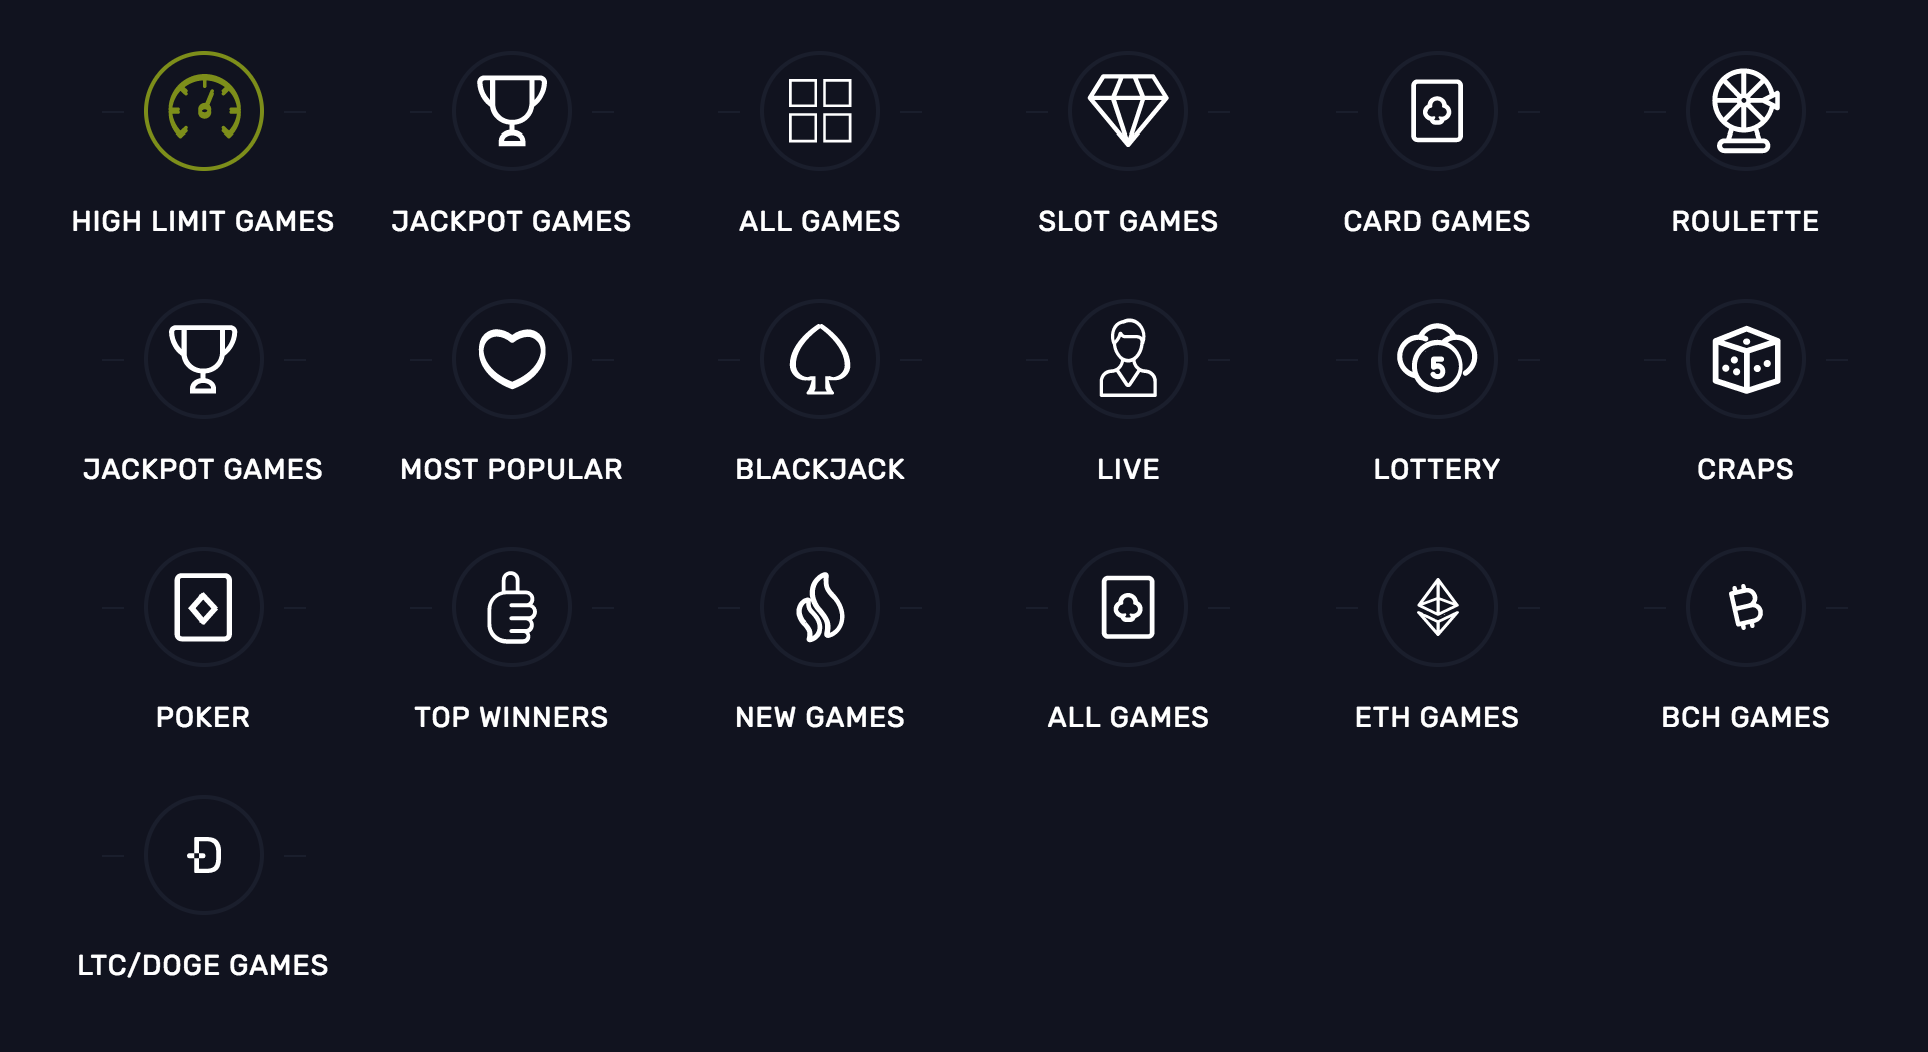 Game selection at Bitcoincasino.us